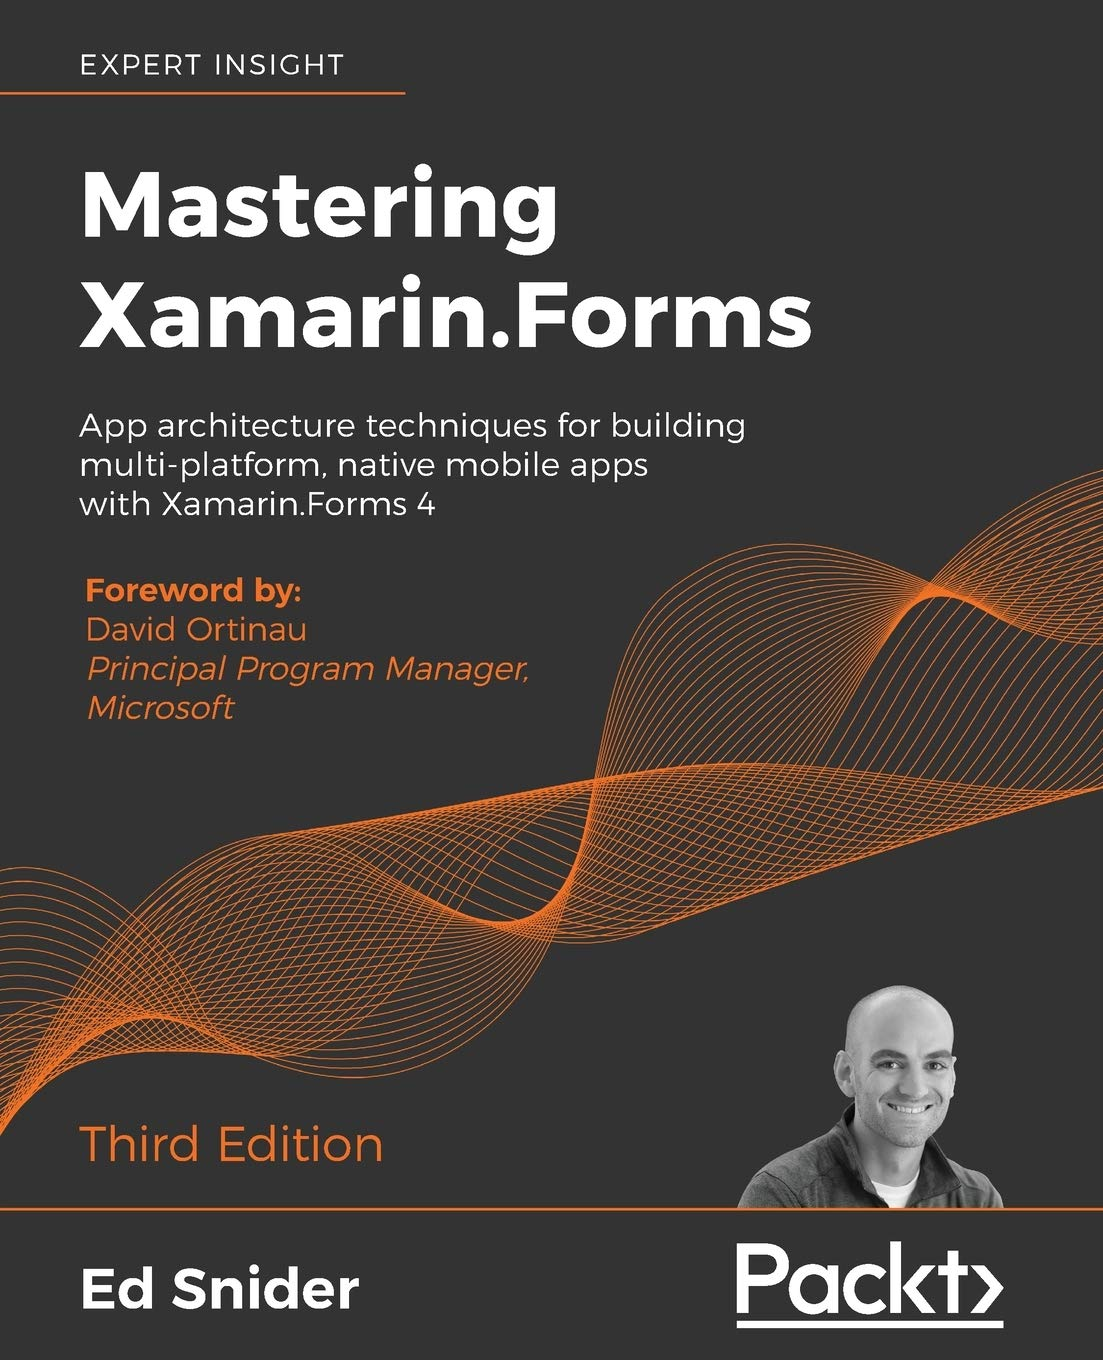 Image OfMastering Xamarin.Forms: App Architecture Techniques For Building Multi-platform, Native Mobile Apps With Xamarin.Forms 4,...